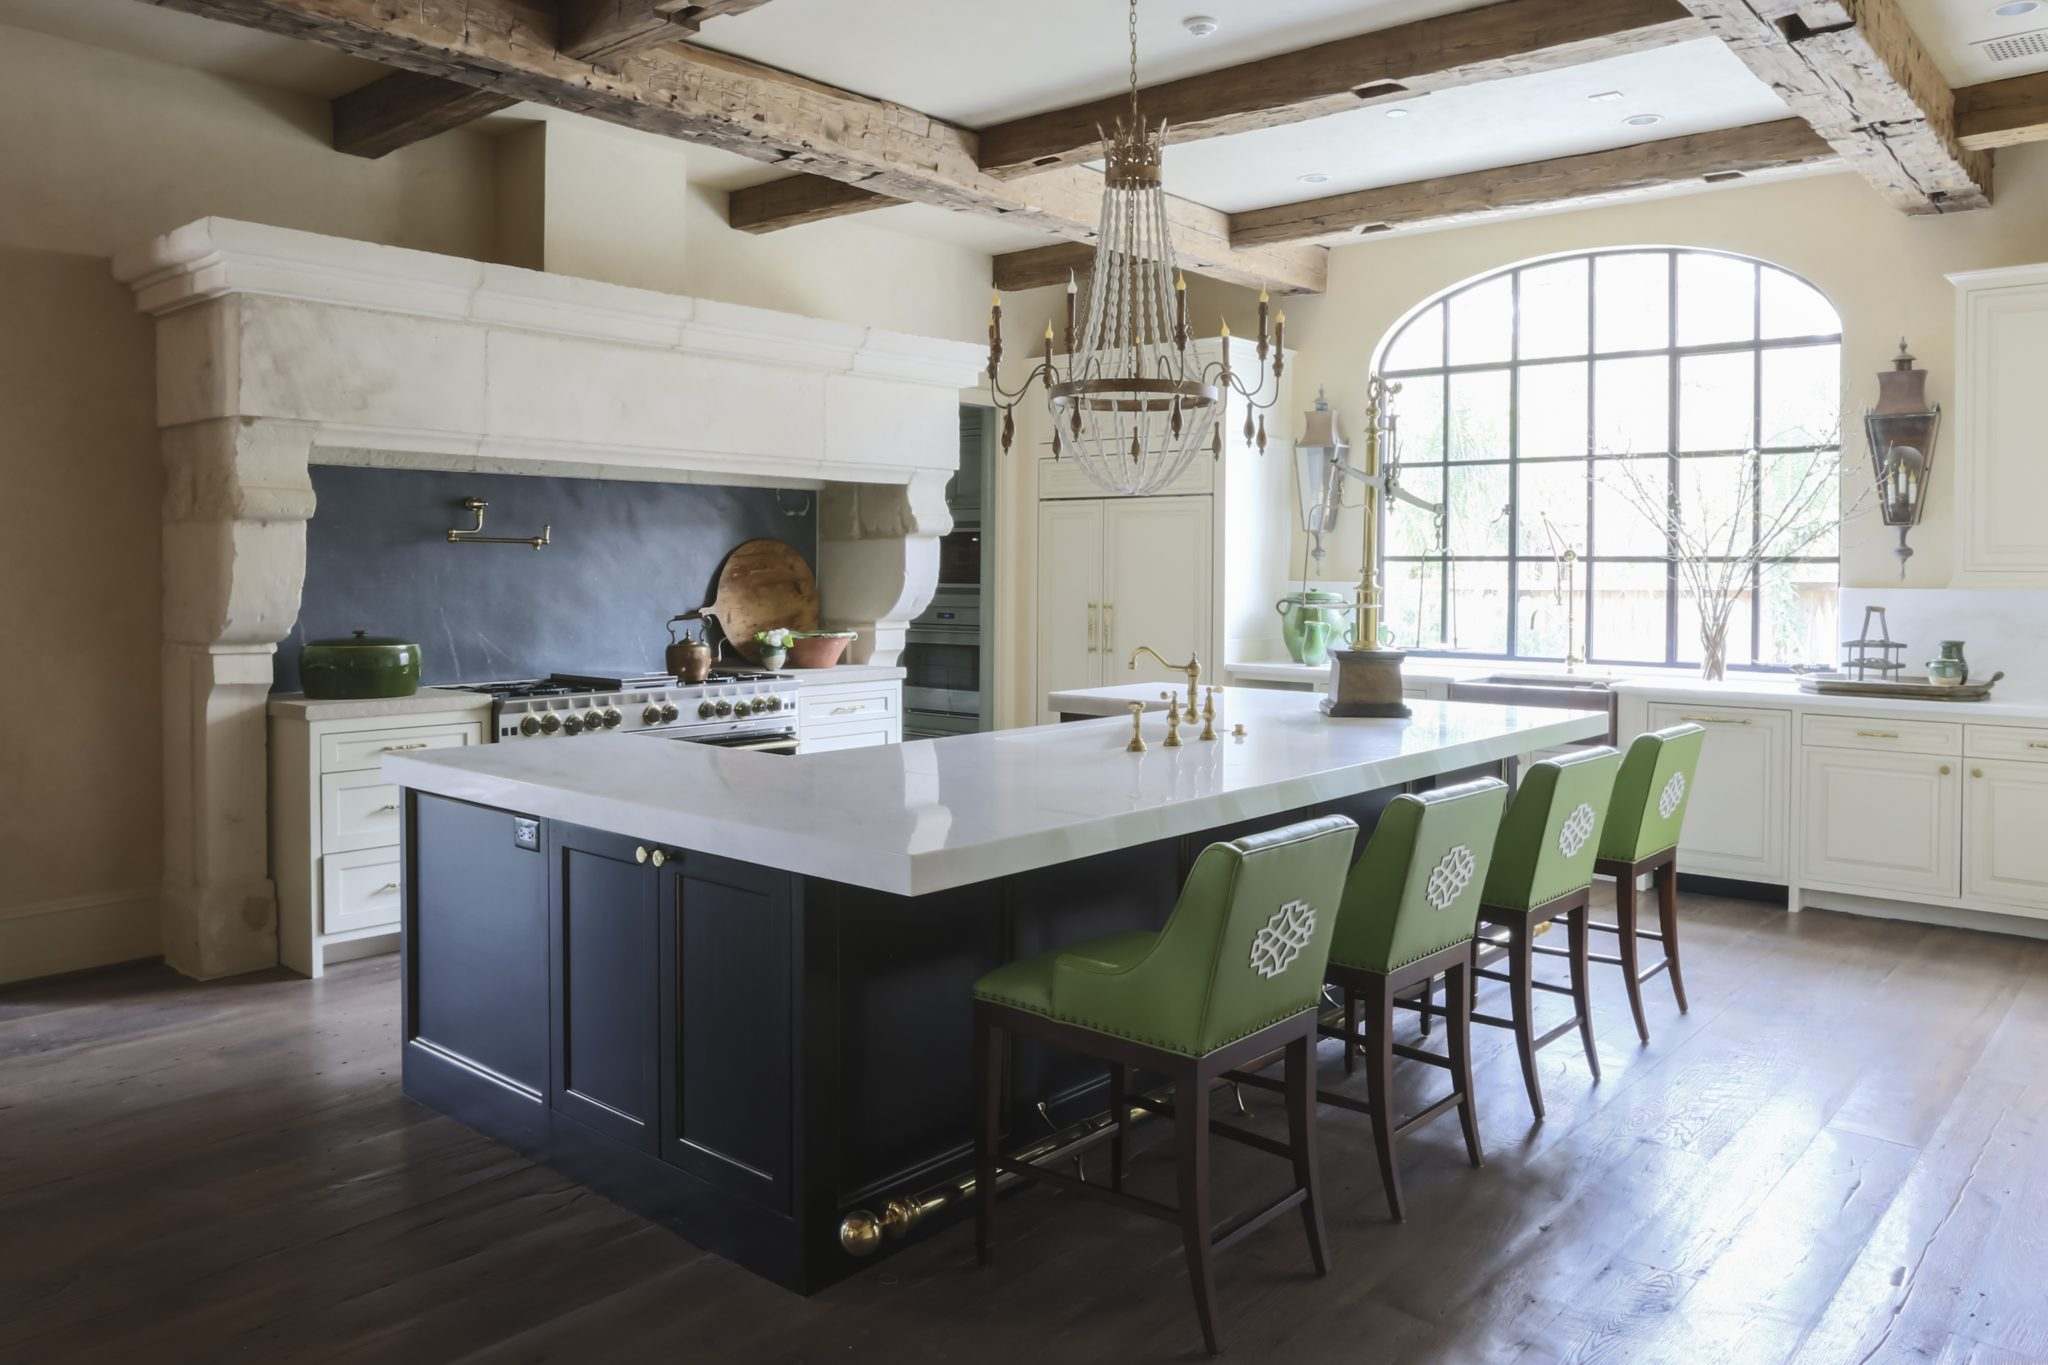 French transitional kitchen with steel windows, reclaimed beams and bright green twist by Triangle Interiors